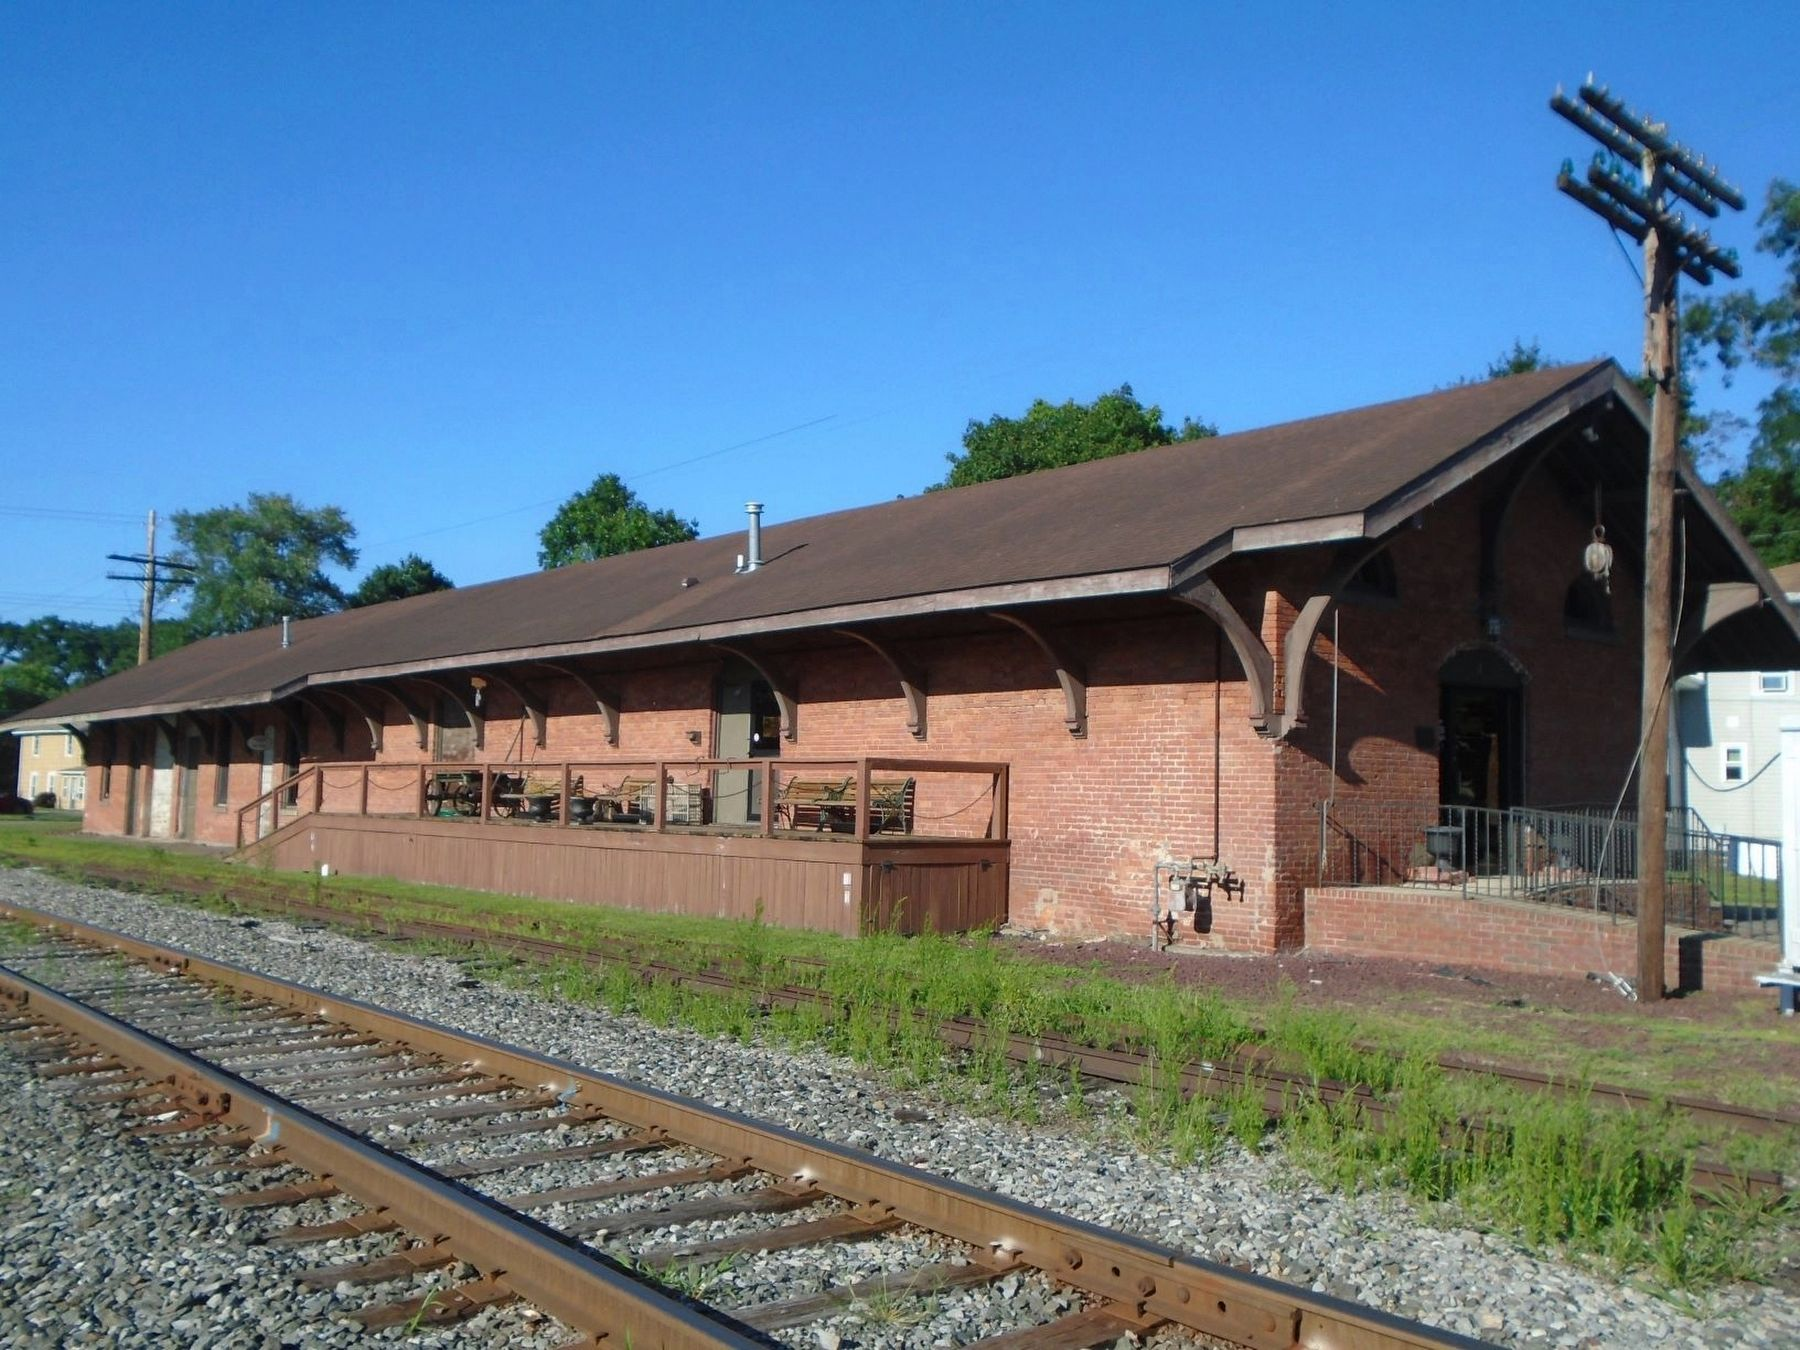 Chemung Railway Depot image. Click for full size.